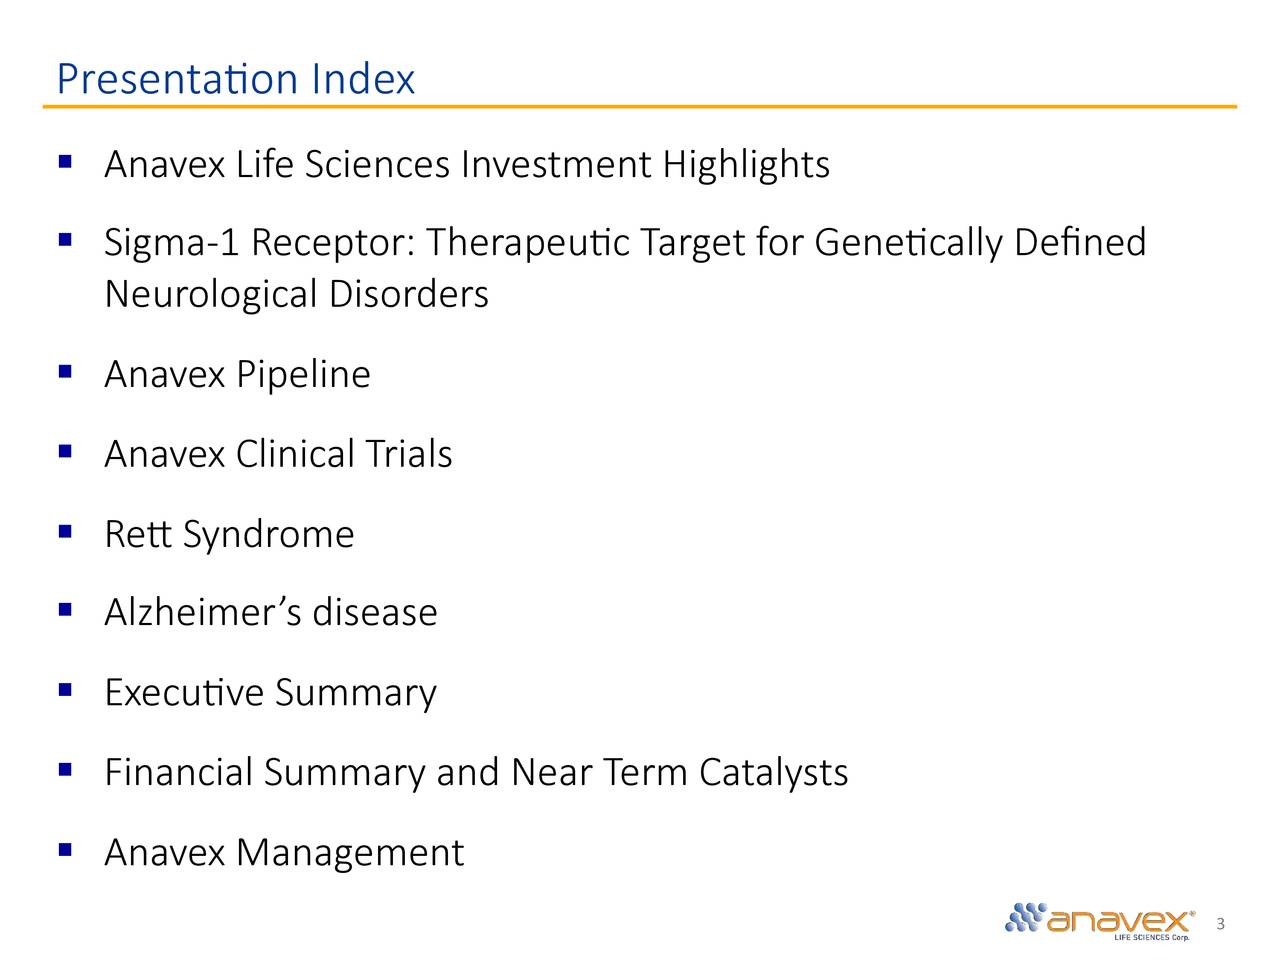 § Anavex Life Sciences Investment Highlights § Sigma-1 Receptor: Therapeu▯c Target for Gene▯cally Defined Neurological Disorders § Anavex Pipeline § Anavex Clinical Trials § Re▯Syndrome § Alzheimer's disease § Execu▯ve Summary § Financial Summary and Near Term Catalysts § Anavex Management 3